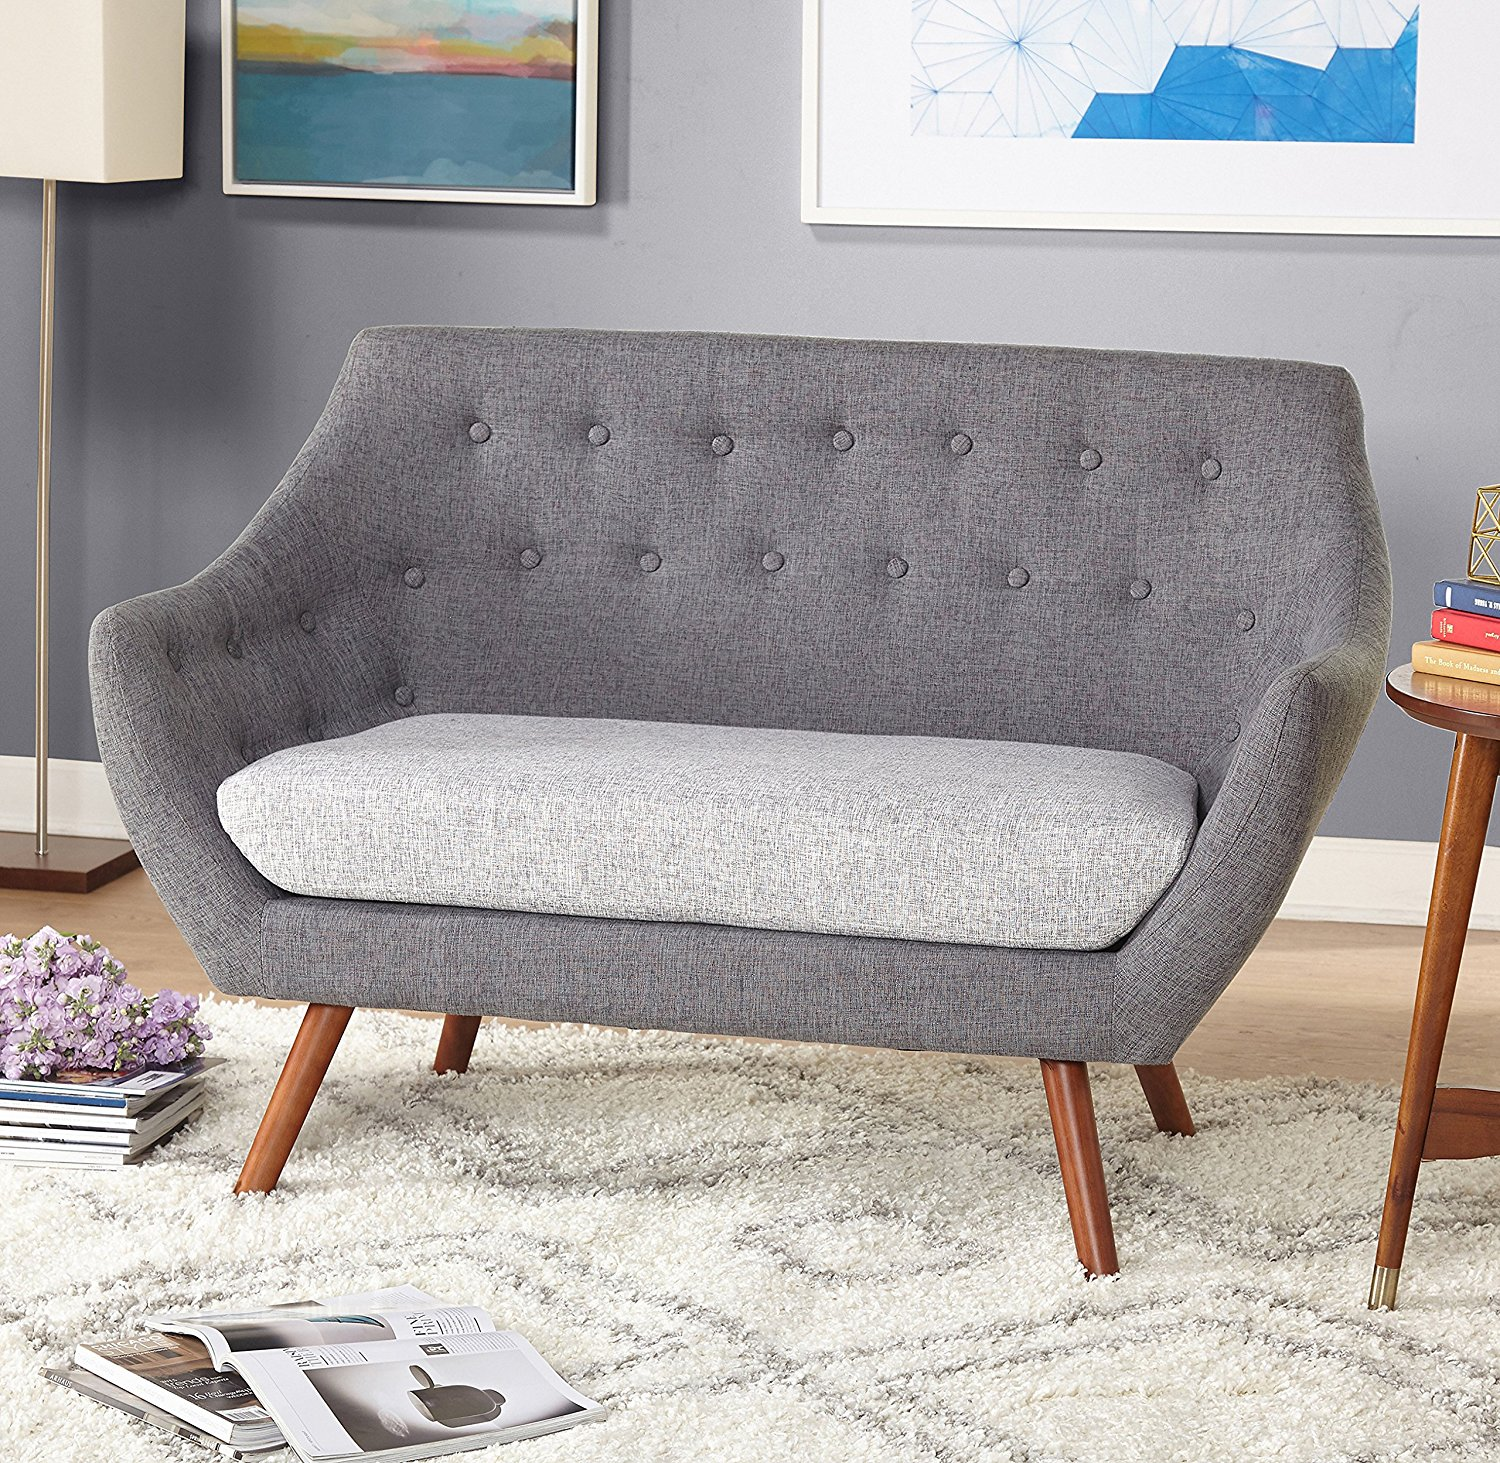 Target Marketing Systems Elijah Collection Mid Century Modern Button Tufted  Upholstered Living Room Loveseat,